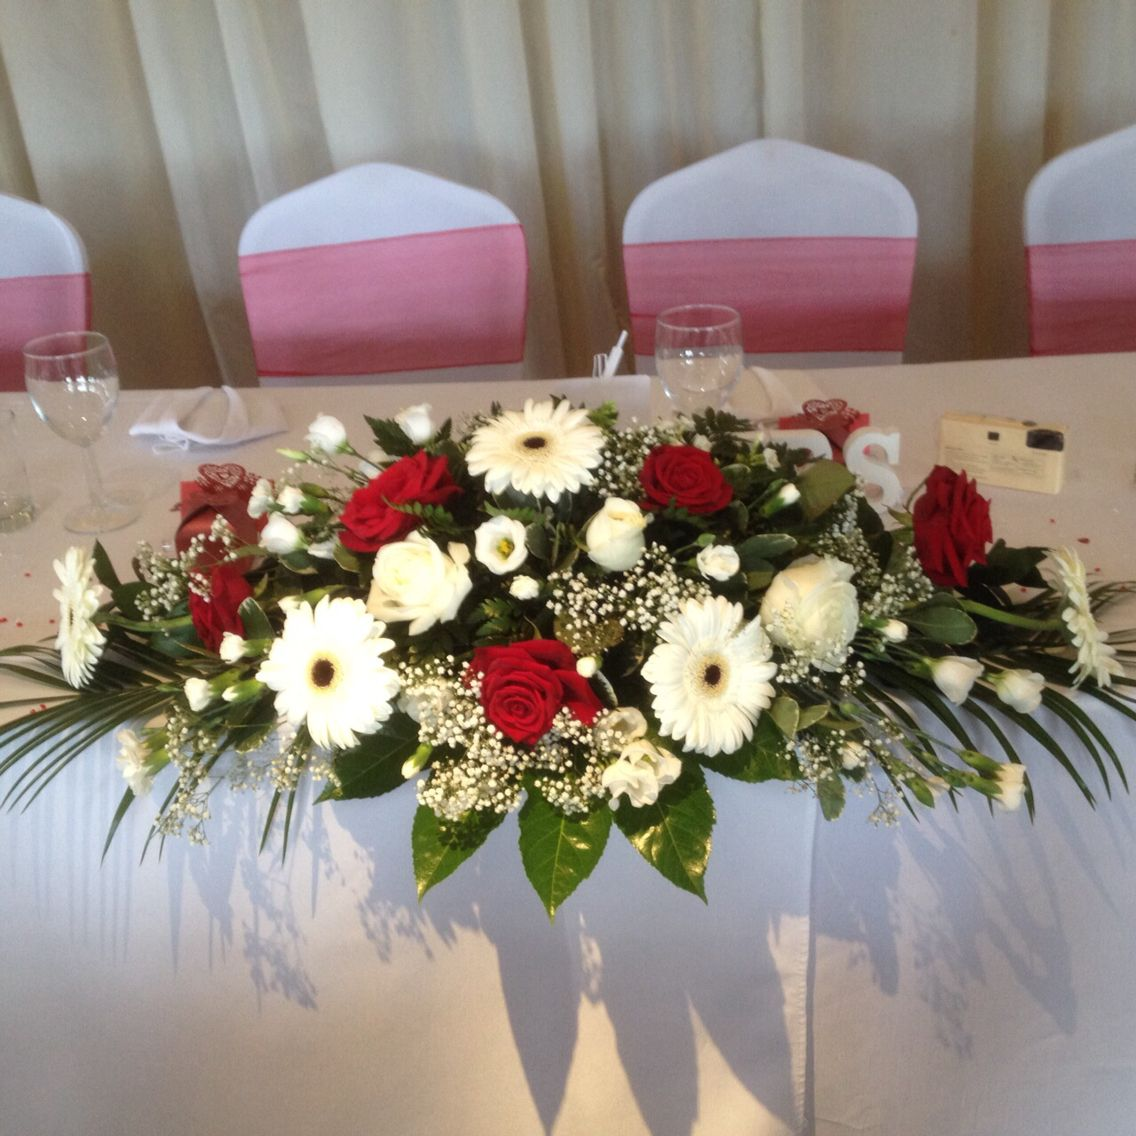 Wedding Altar Flowers Price: Top Table Arrangement In Roses And Gerbera Red And White